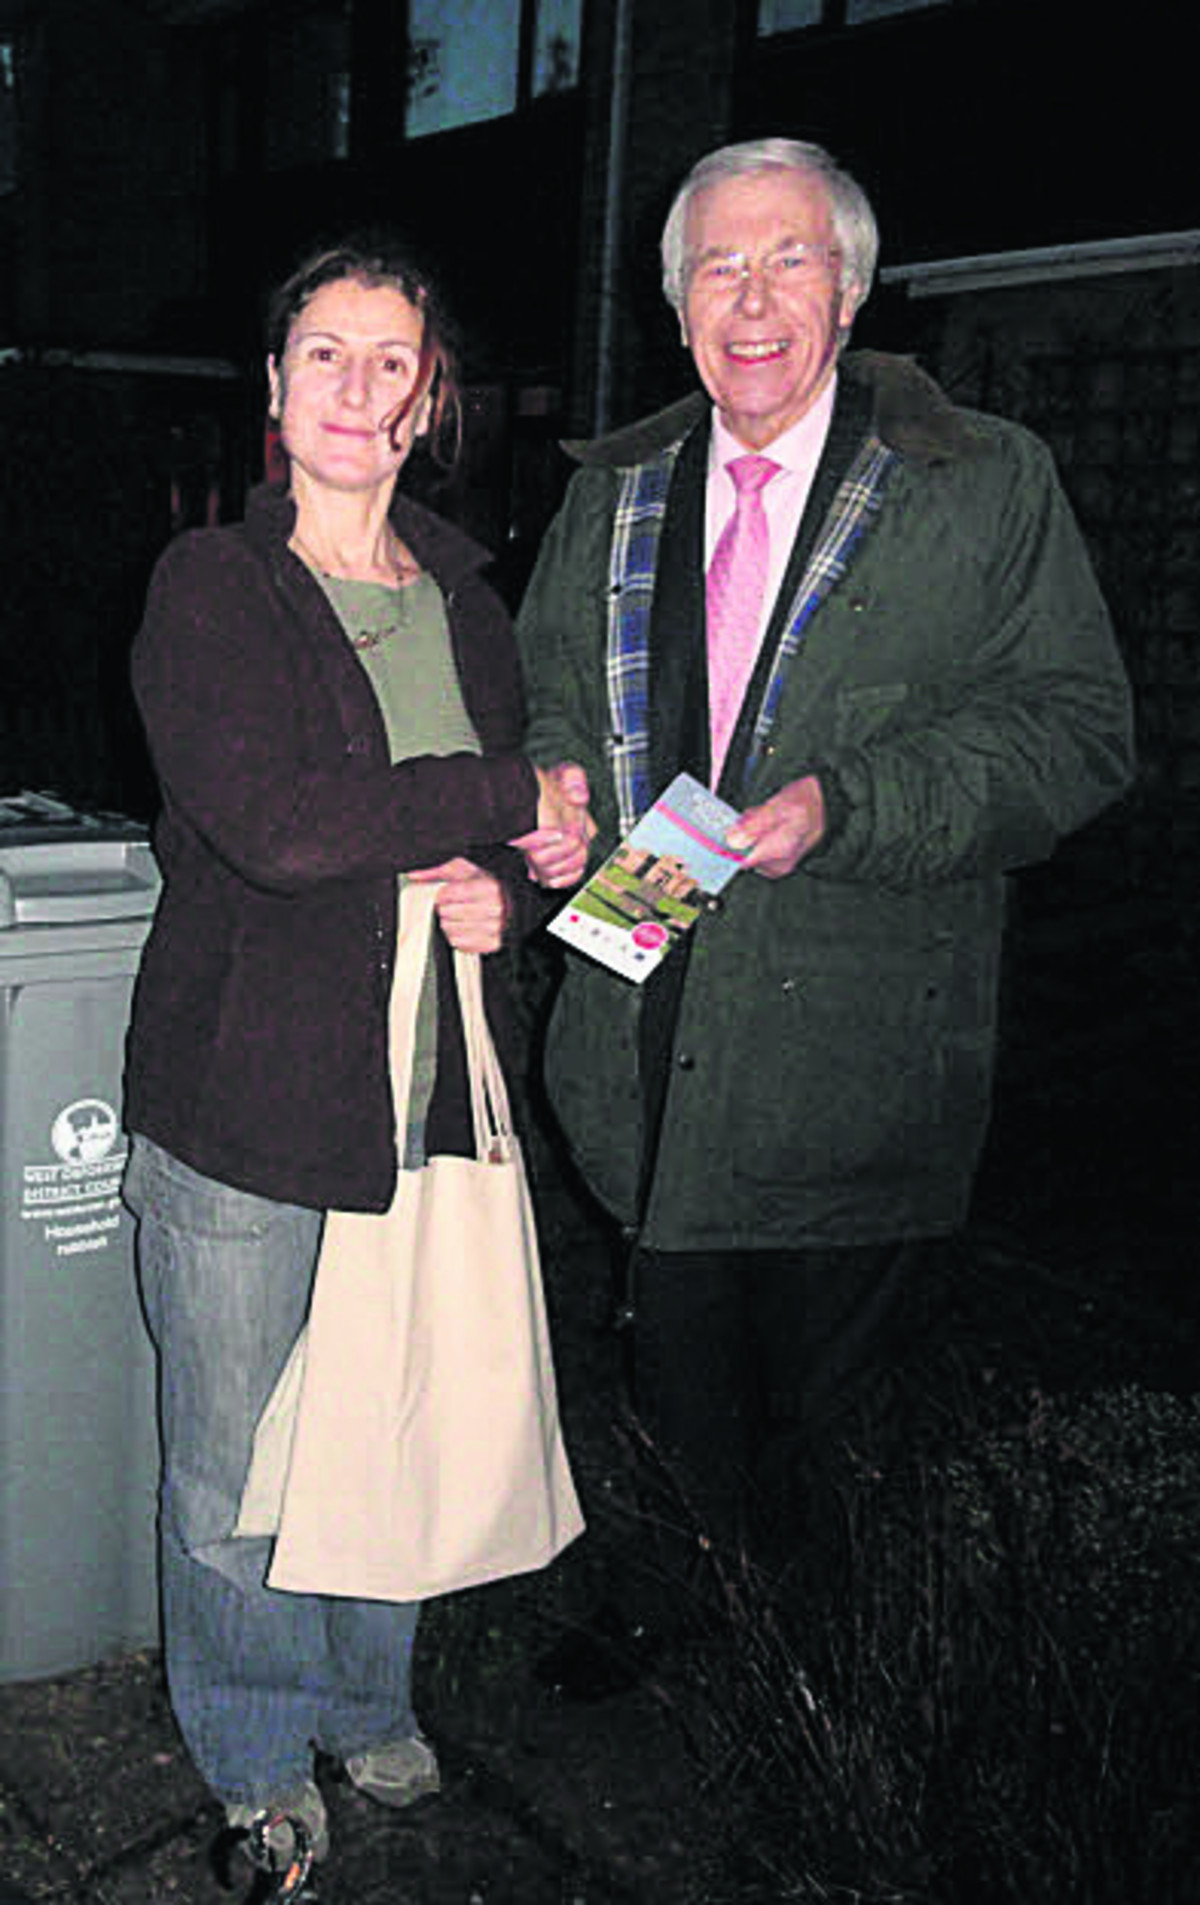 Reg Waite, of Oxfordshire Waste Partnership, is pictured presenting Ms Rhea Zambrellas with her prize